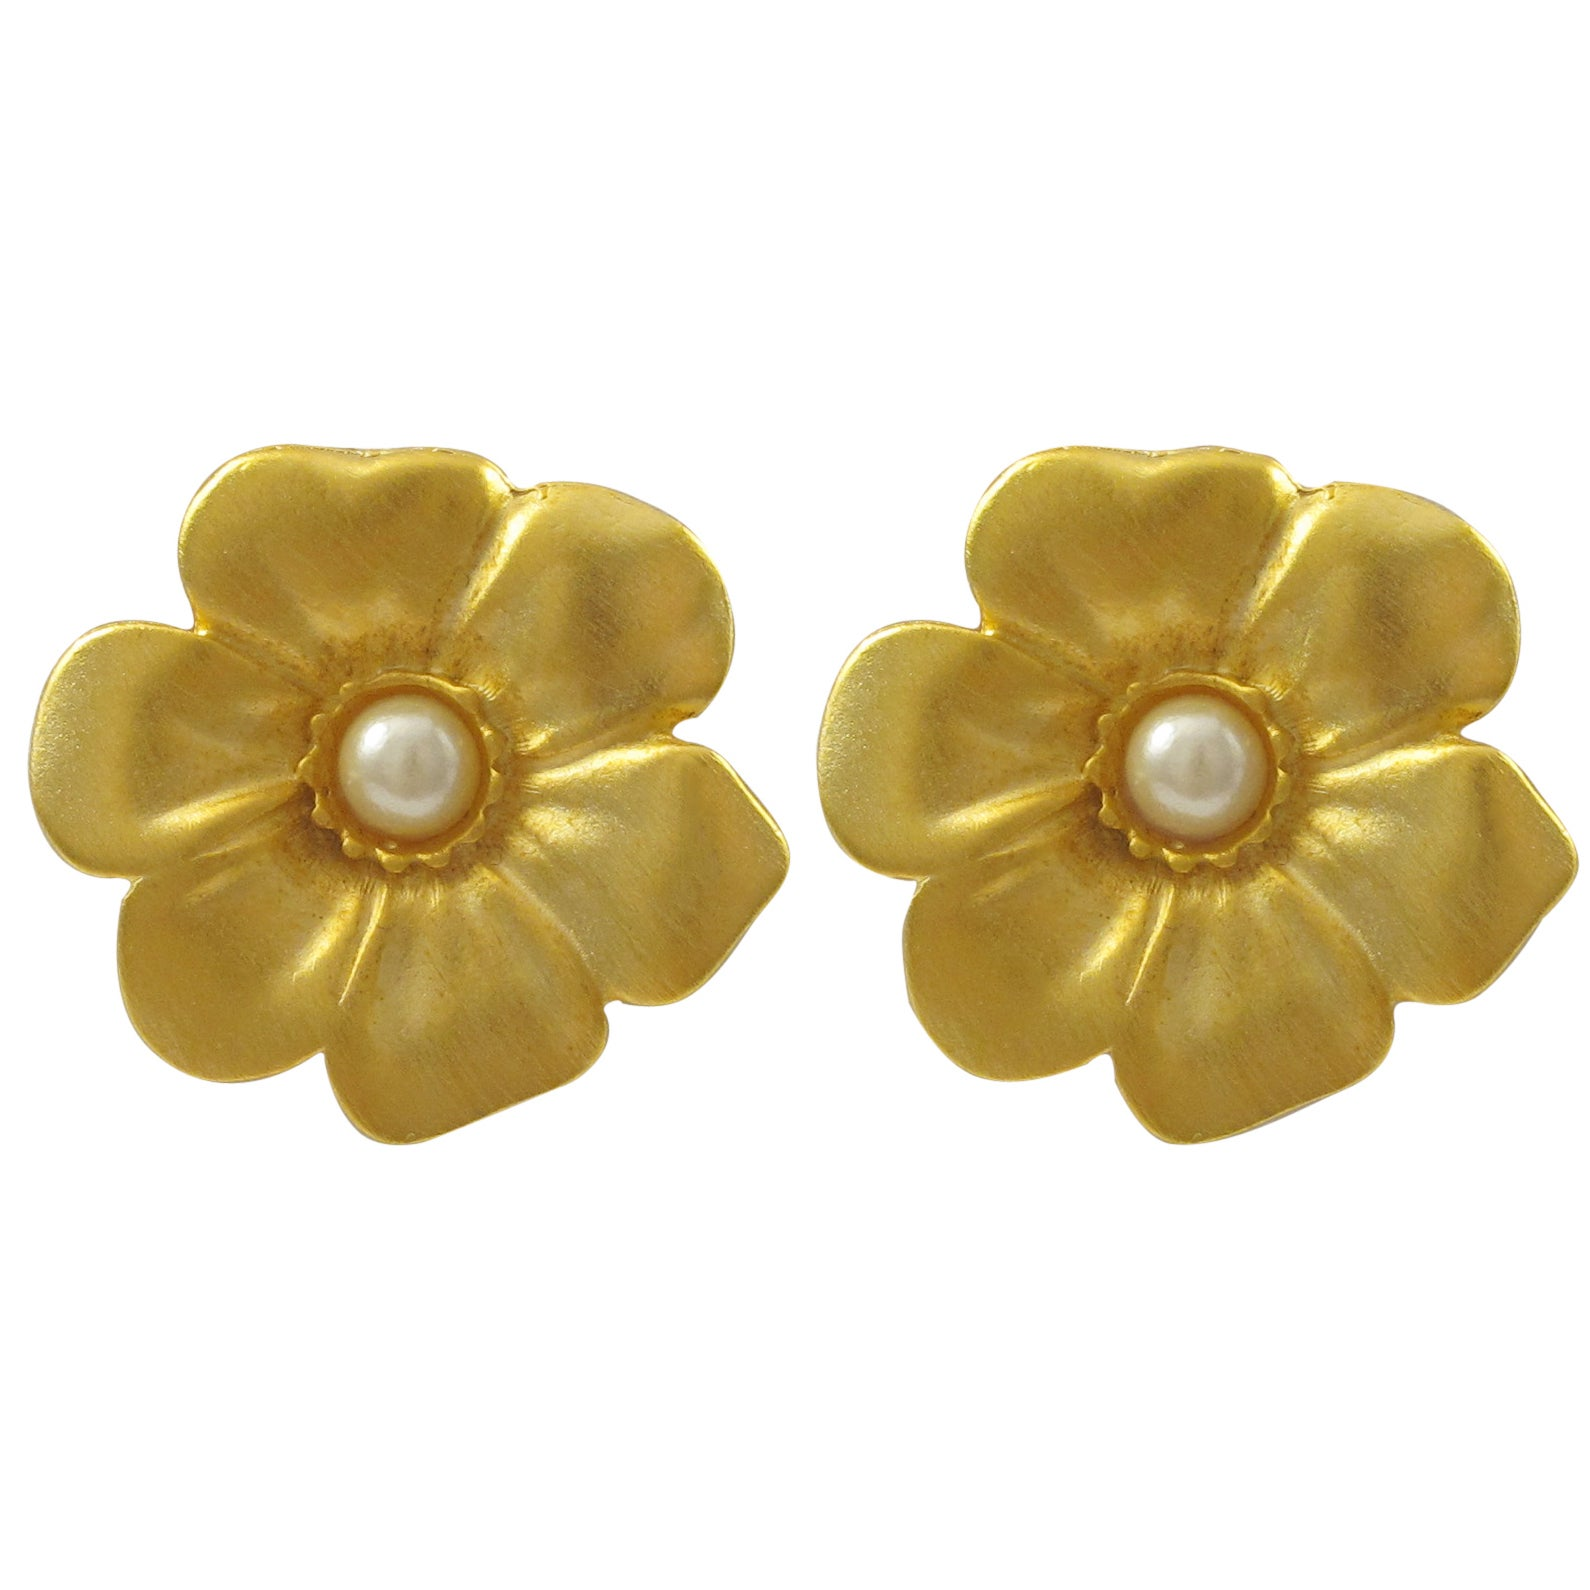 Shop Luxiro Satin Gold Finish Faux Pearl Flower Earrings Free